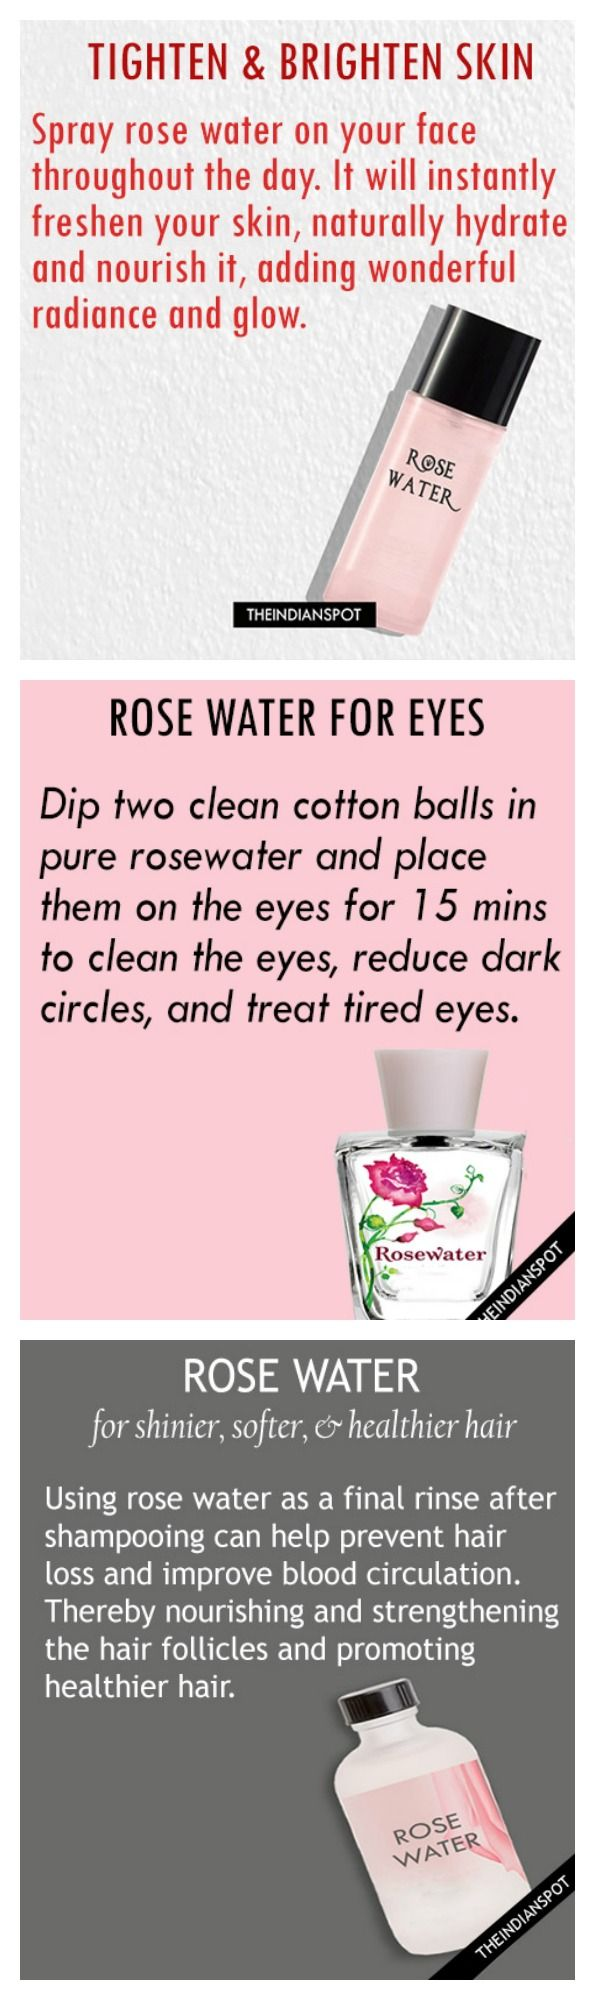 Rose water Just incorporated this in my daily beauty routine and